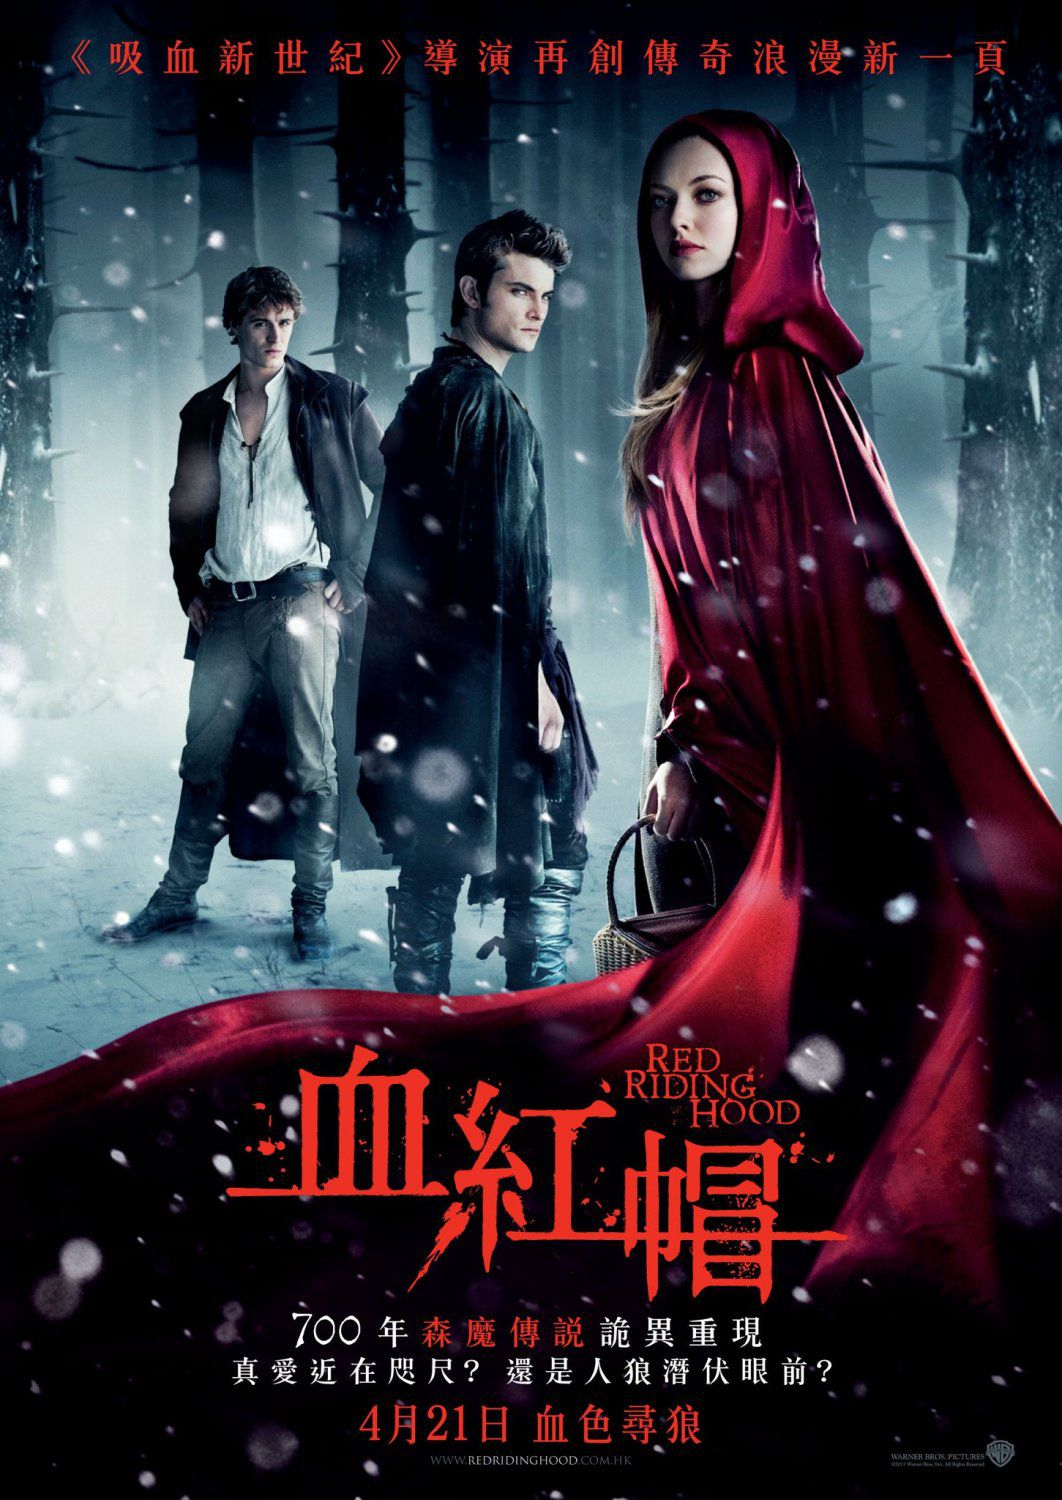 Cappuccetto Rosso - Red Riding Hood ... live action - film poster - Henry Cavill